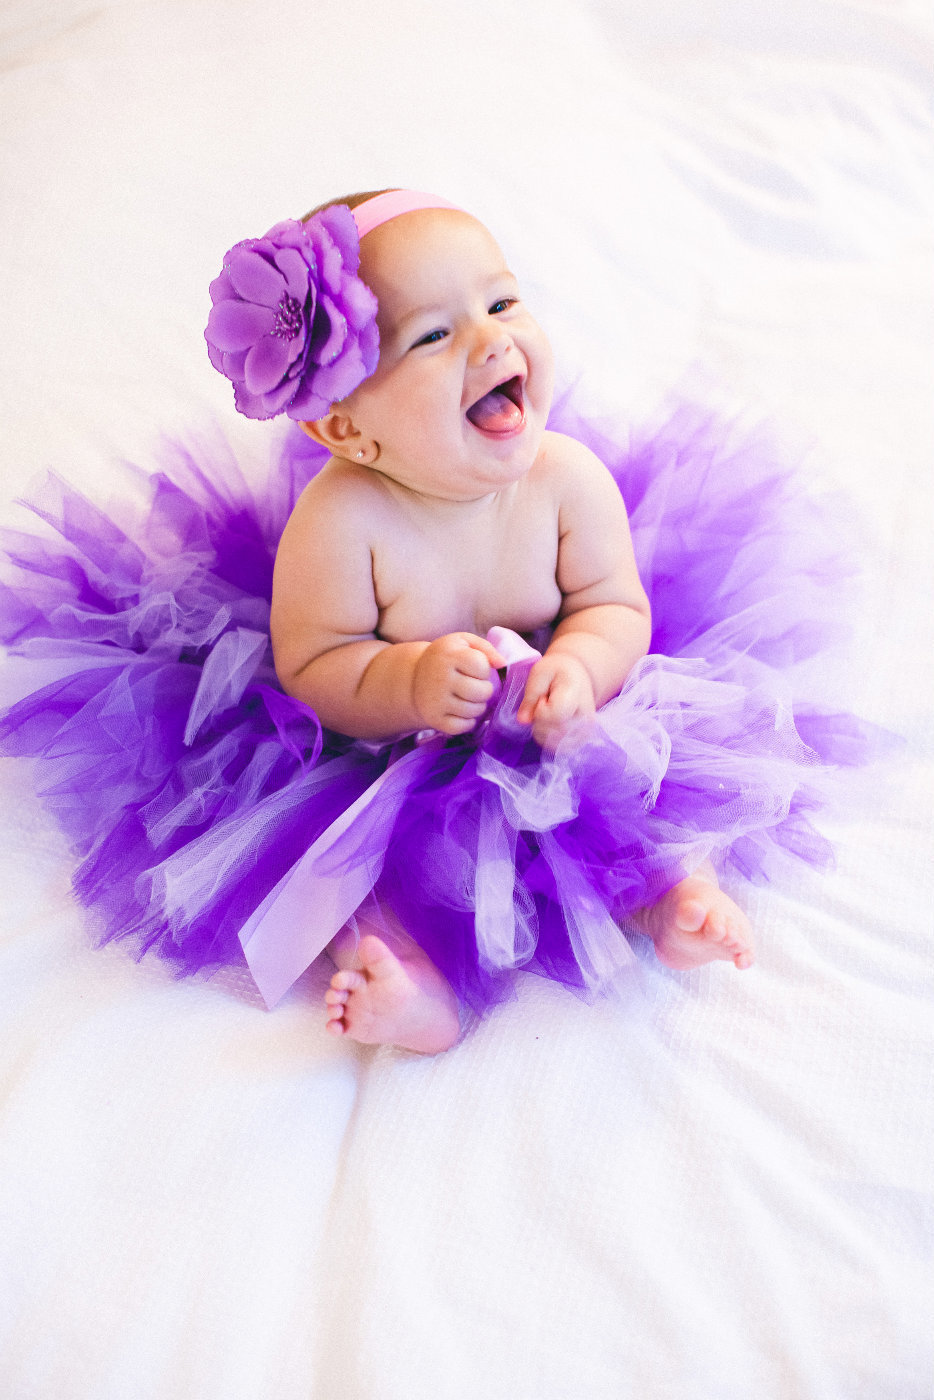 diblasio_photo_dylan_6mo_29